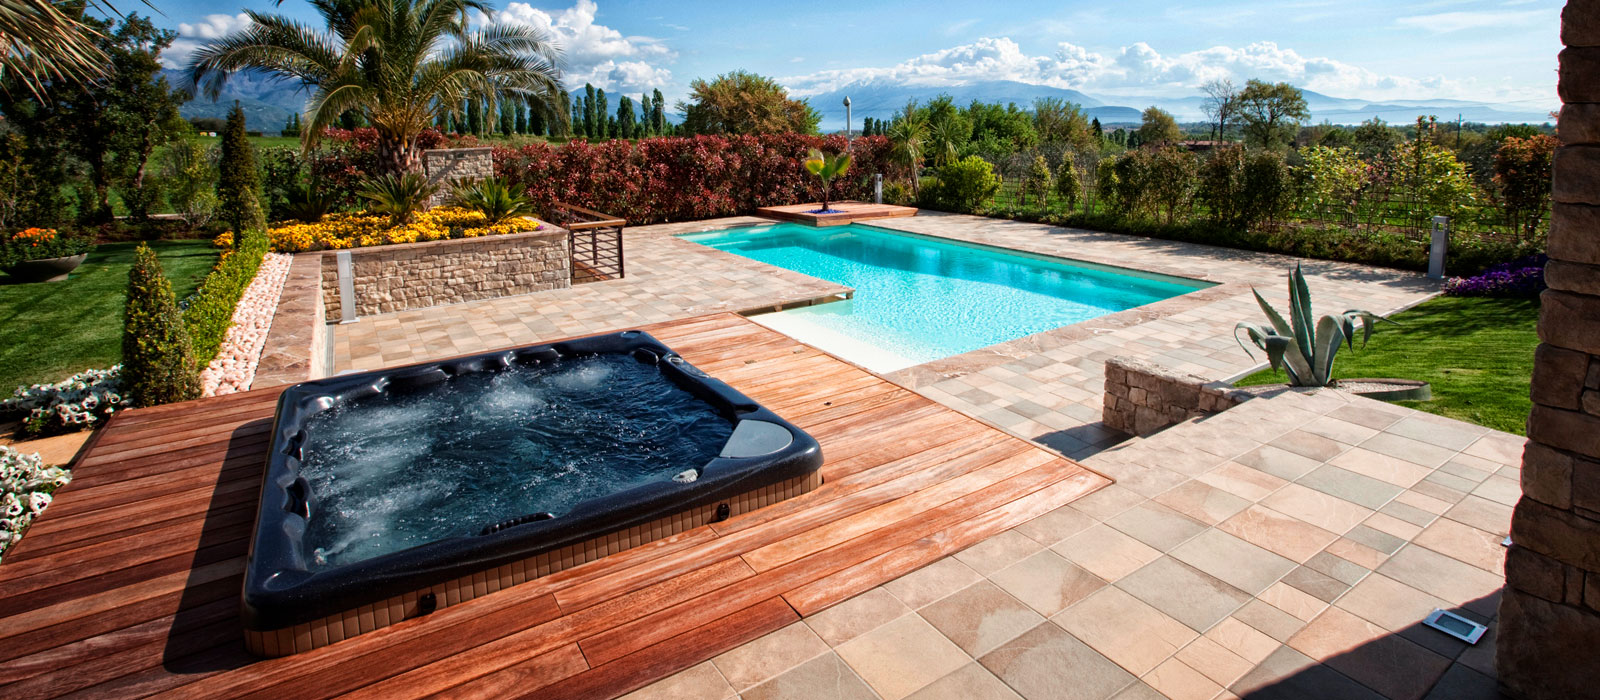 Outdoor Whirlpool Cheap Outdoor Whirlpool Spa Pools Castiglione Piscine Dessì